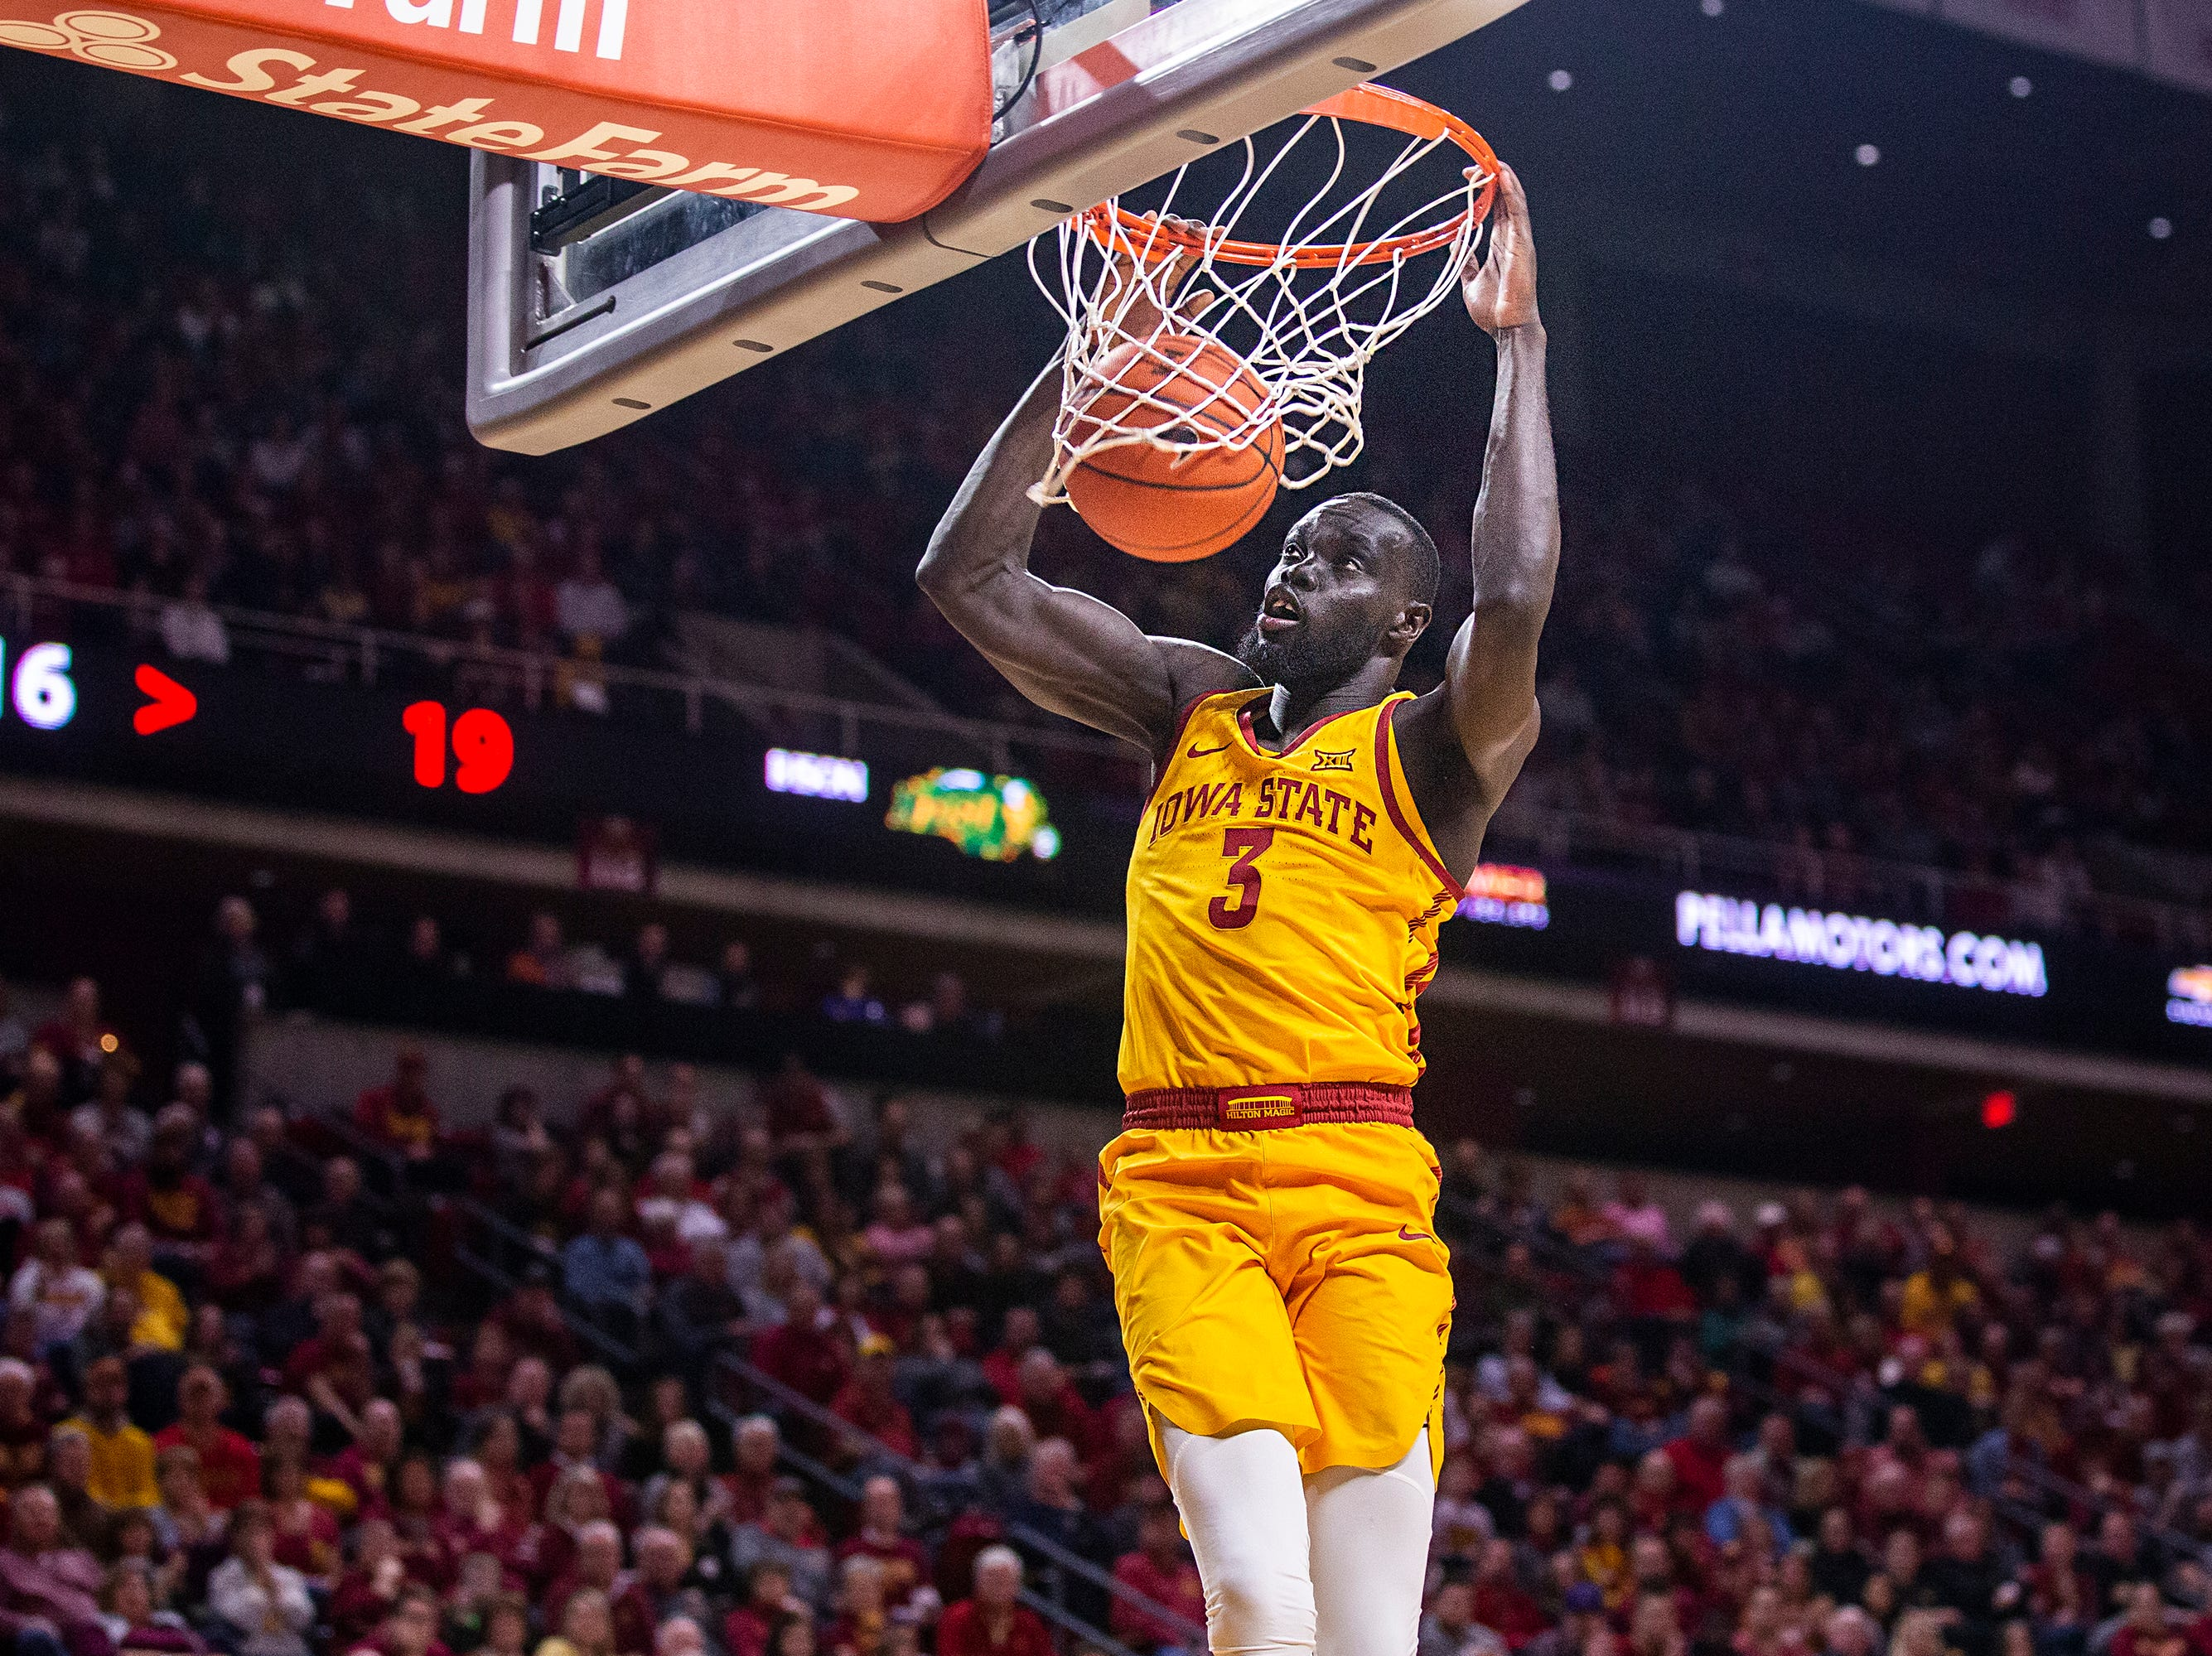 Iowa State's Marial Shayok dunks the ball during the Iowa State men's basketball game against North Dakota State University on Monday, Dec. 3, 2018, in Hilton Coliseum.